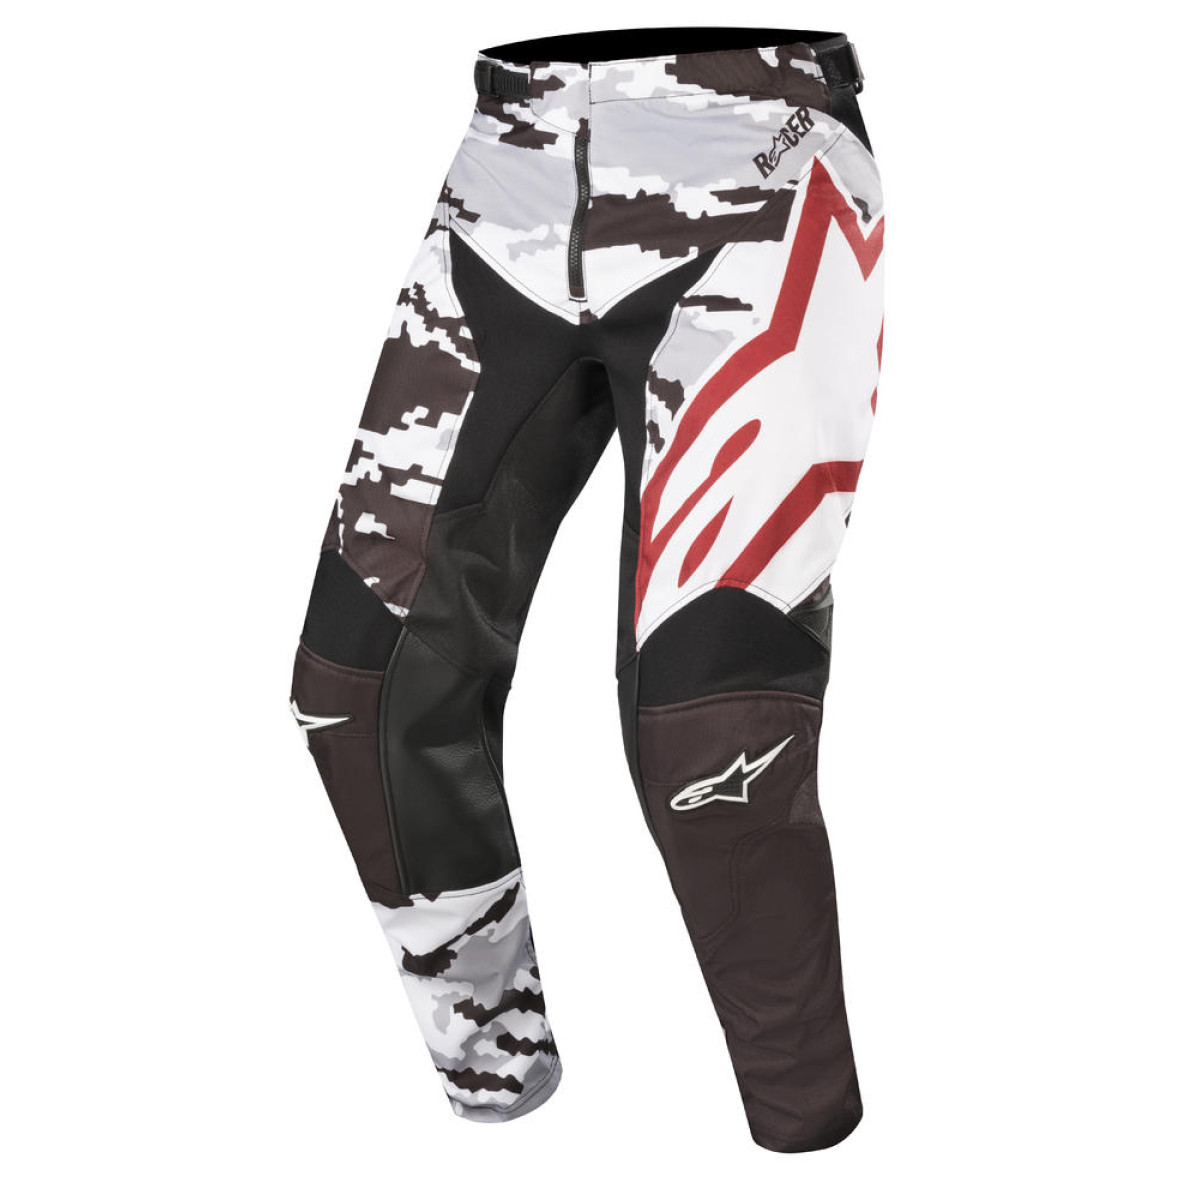 pantalon alpinestars cross racer tactical gris noir burgundy 2019 crossmoto fr 02 11 2018. Black Bedroom Furniture Sets. Home Design Ideas